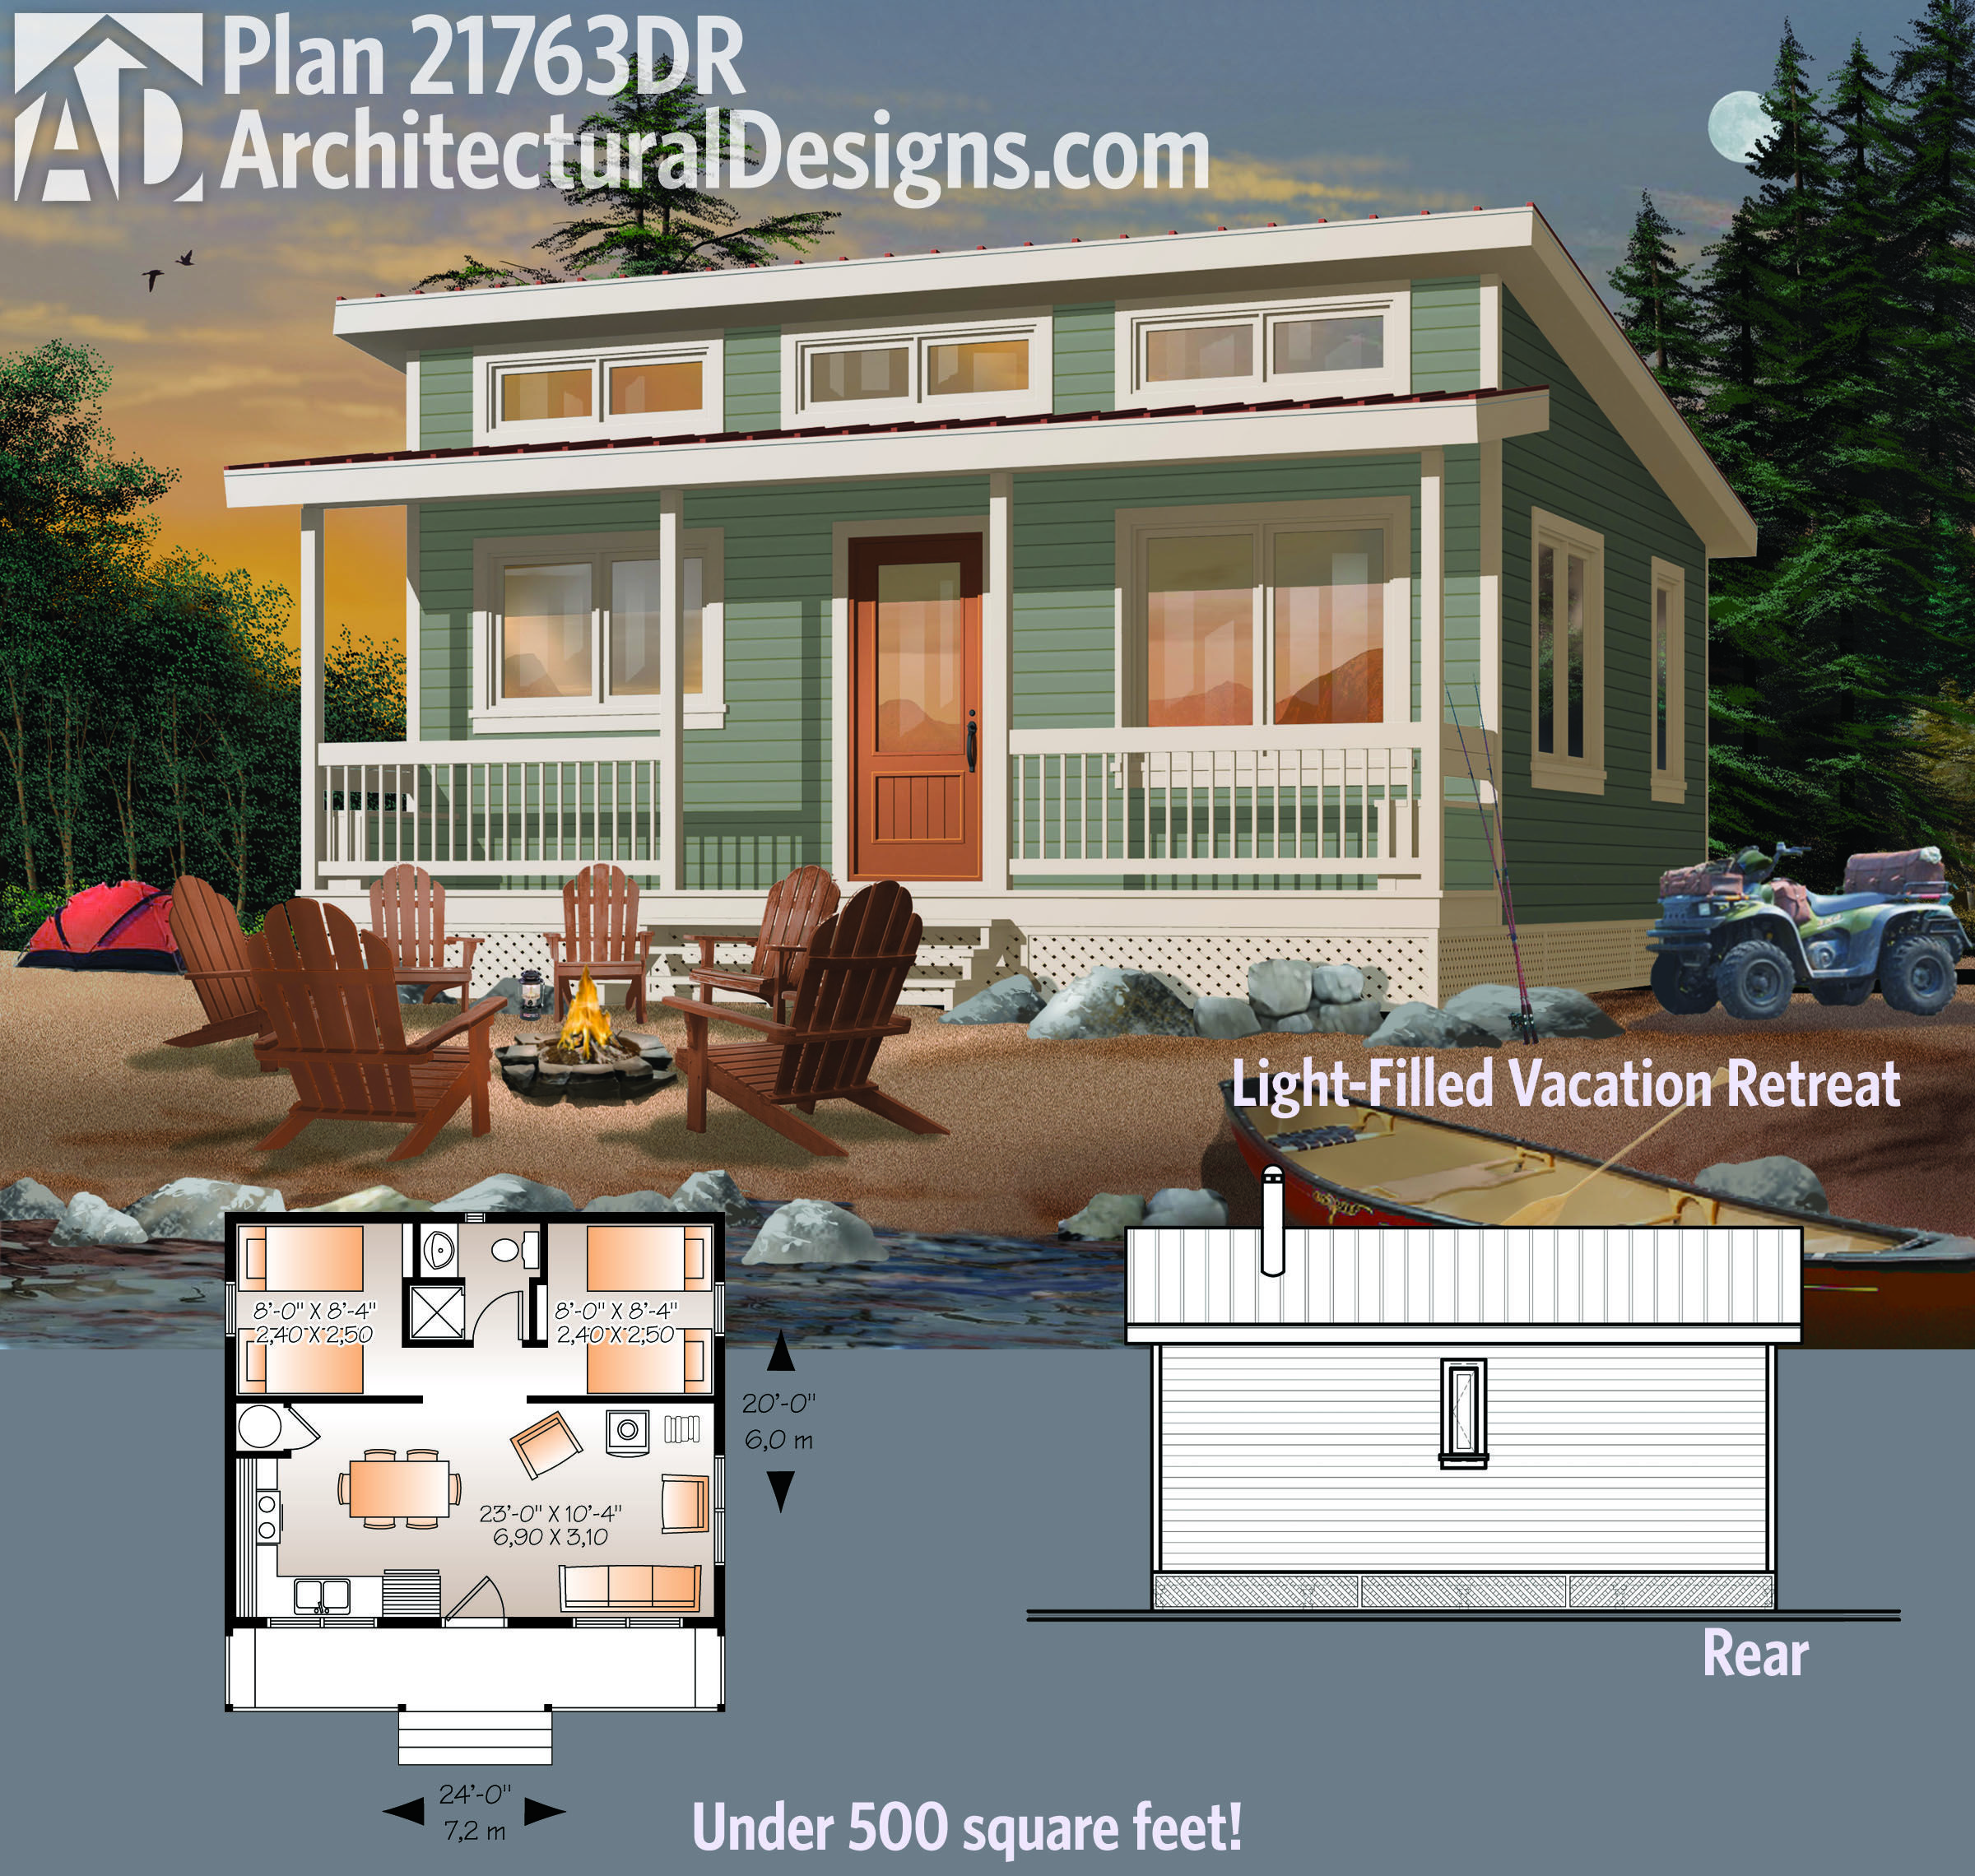 Architectural Designs Tiny House Plan 21763DR gives